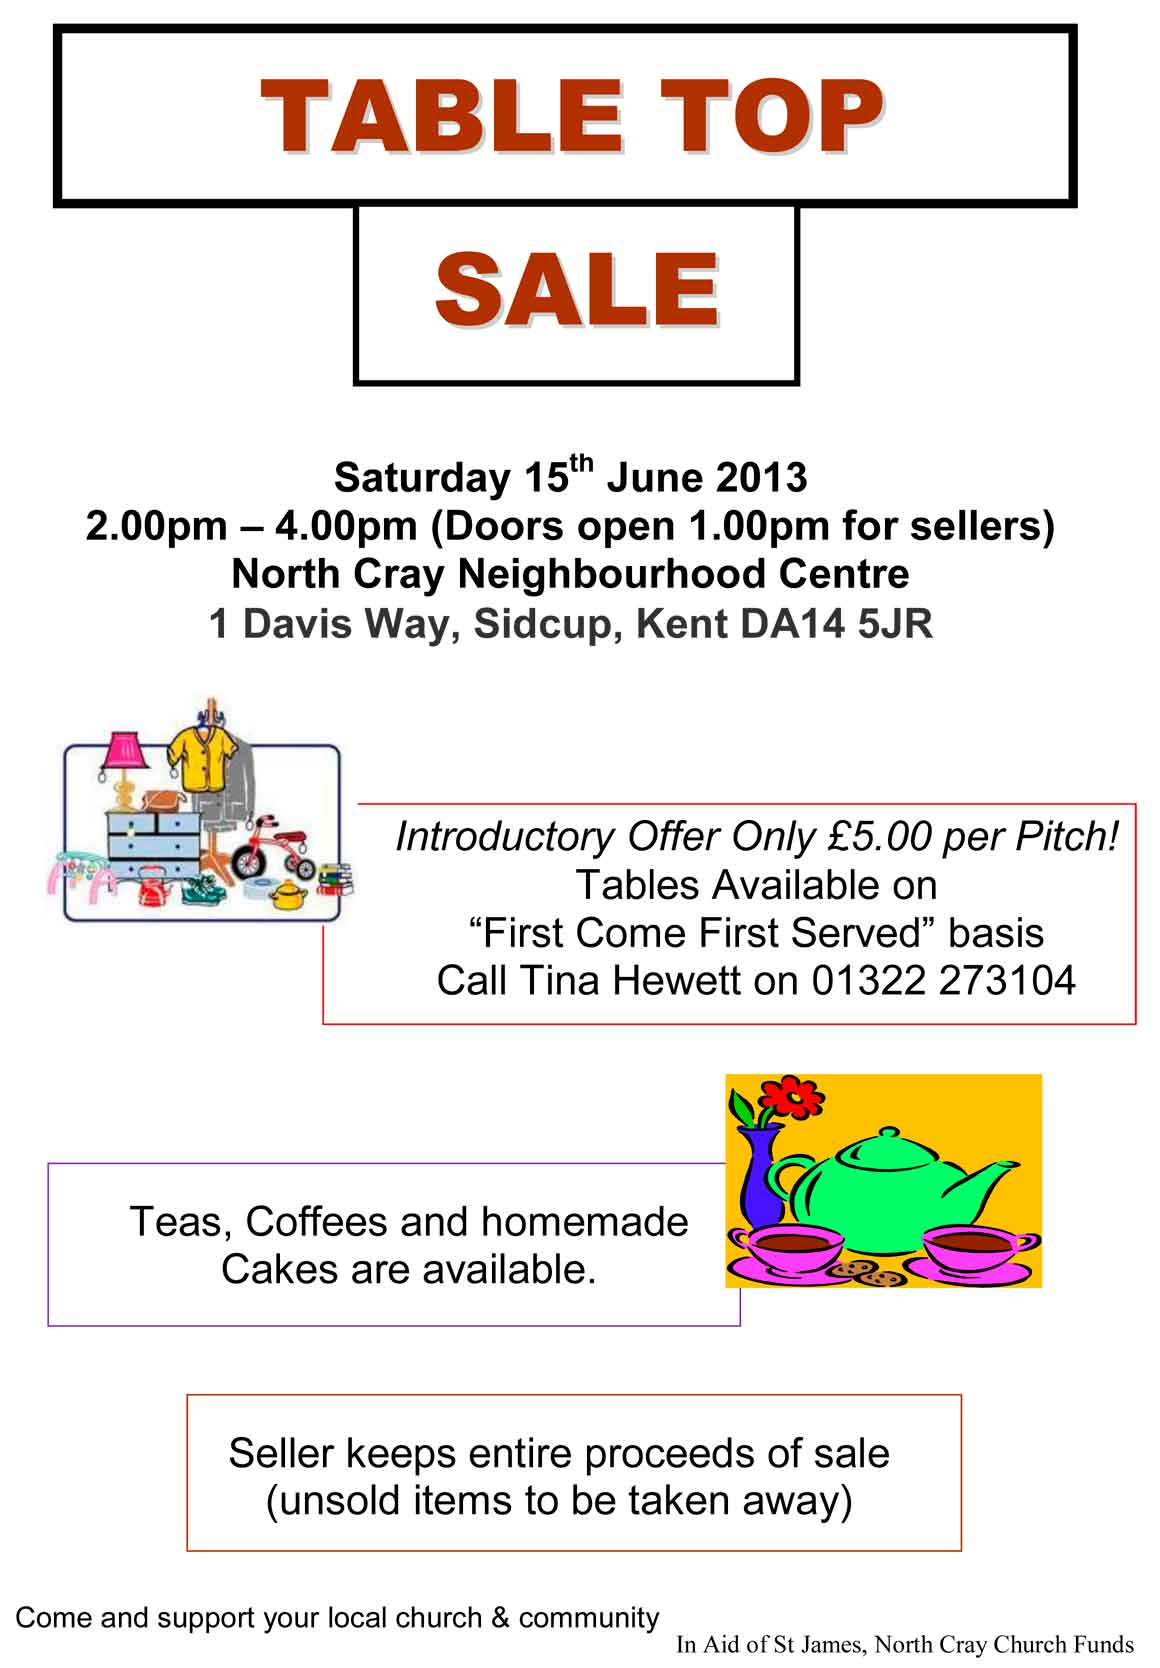 St. James Church, North Cray, Table Top Sale